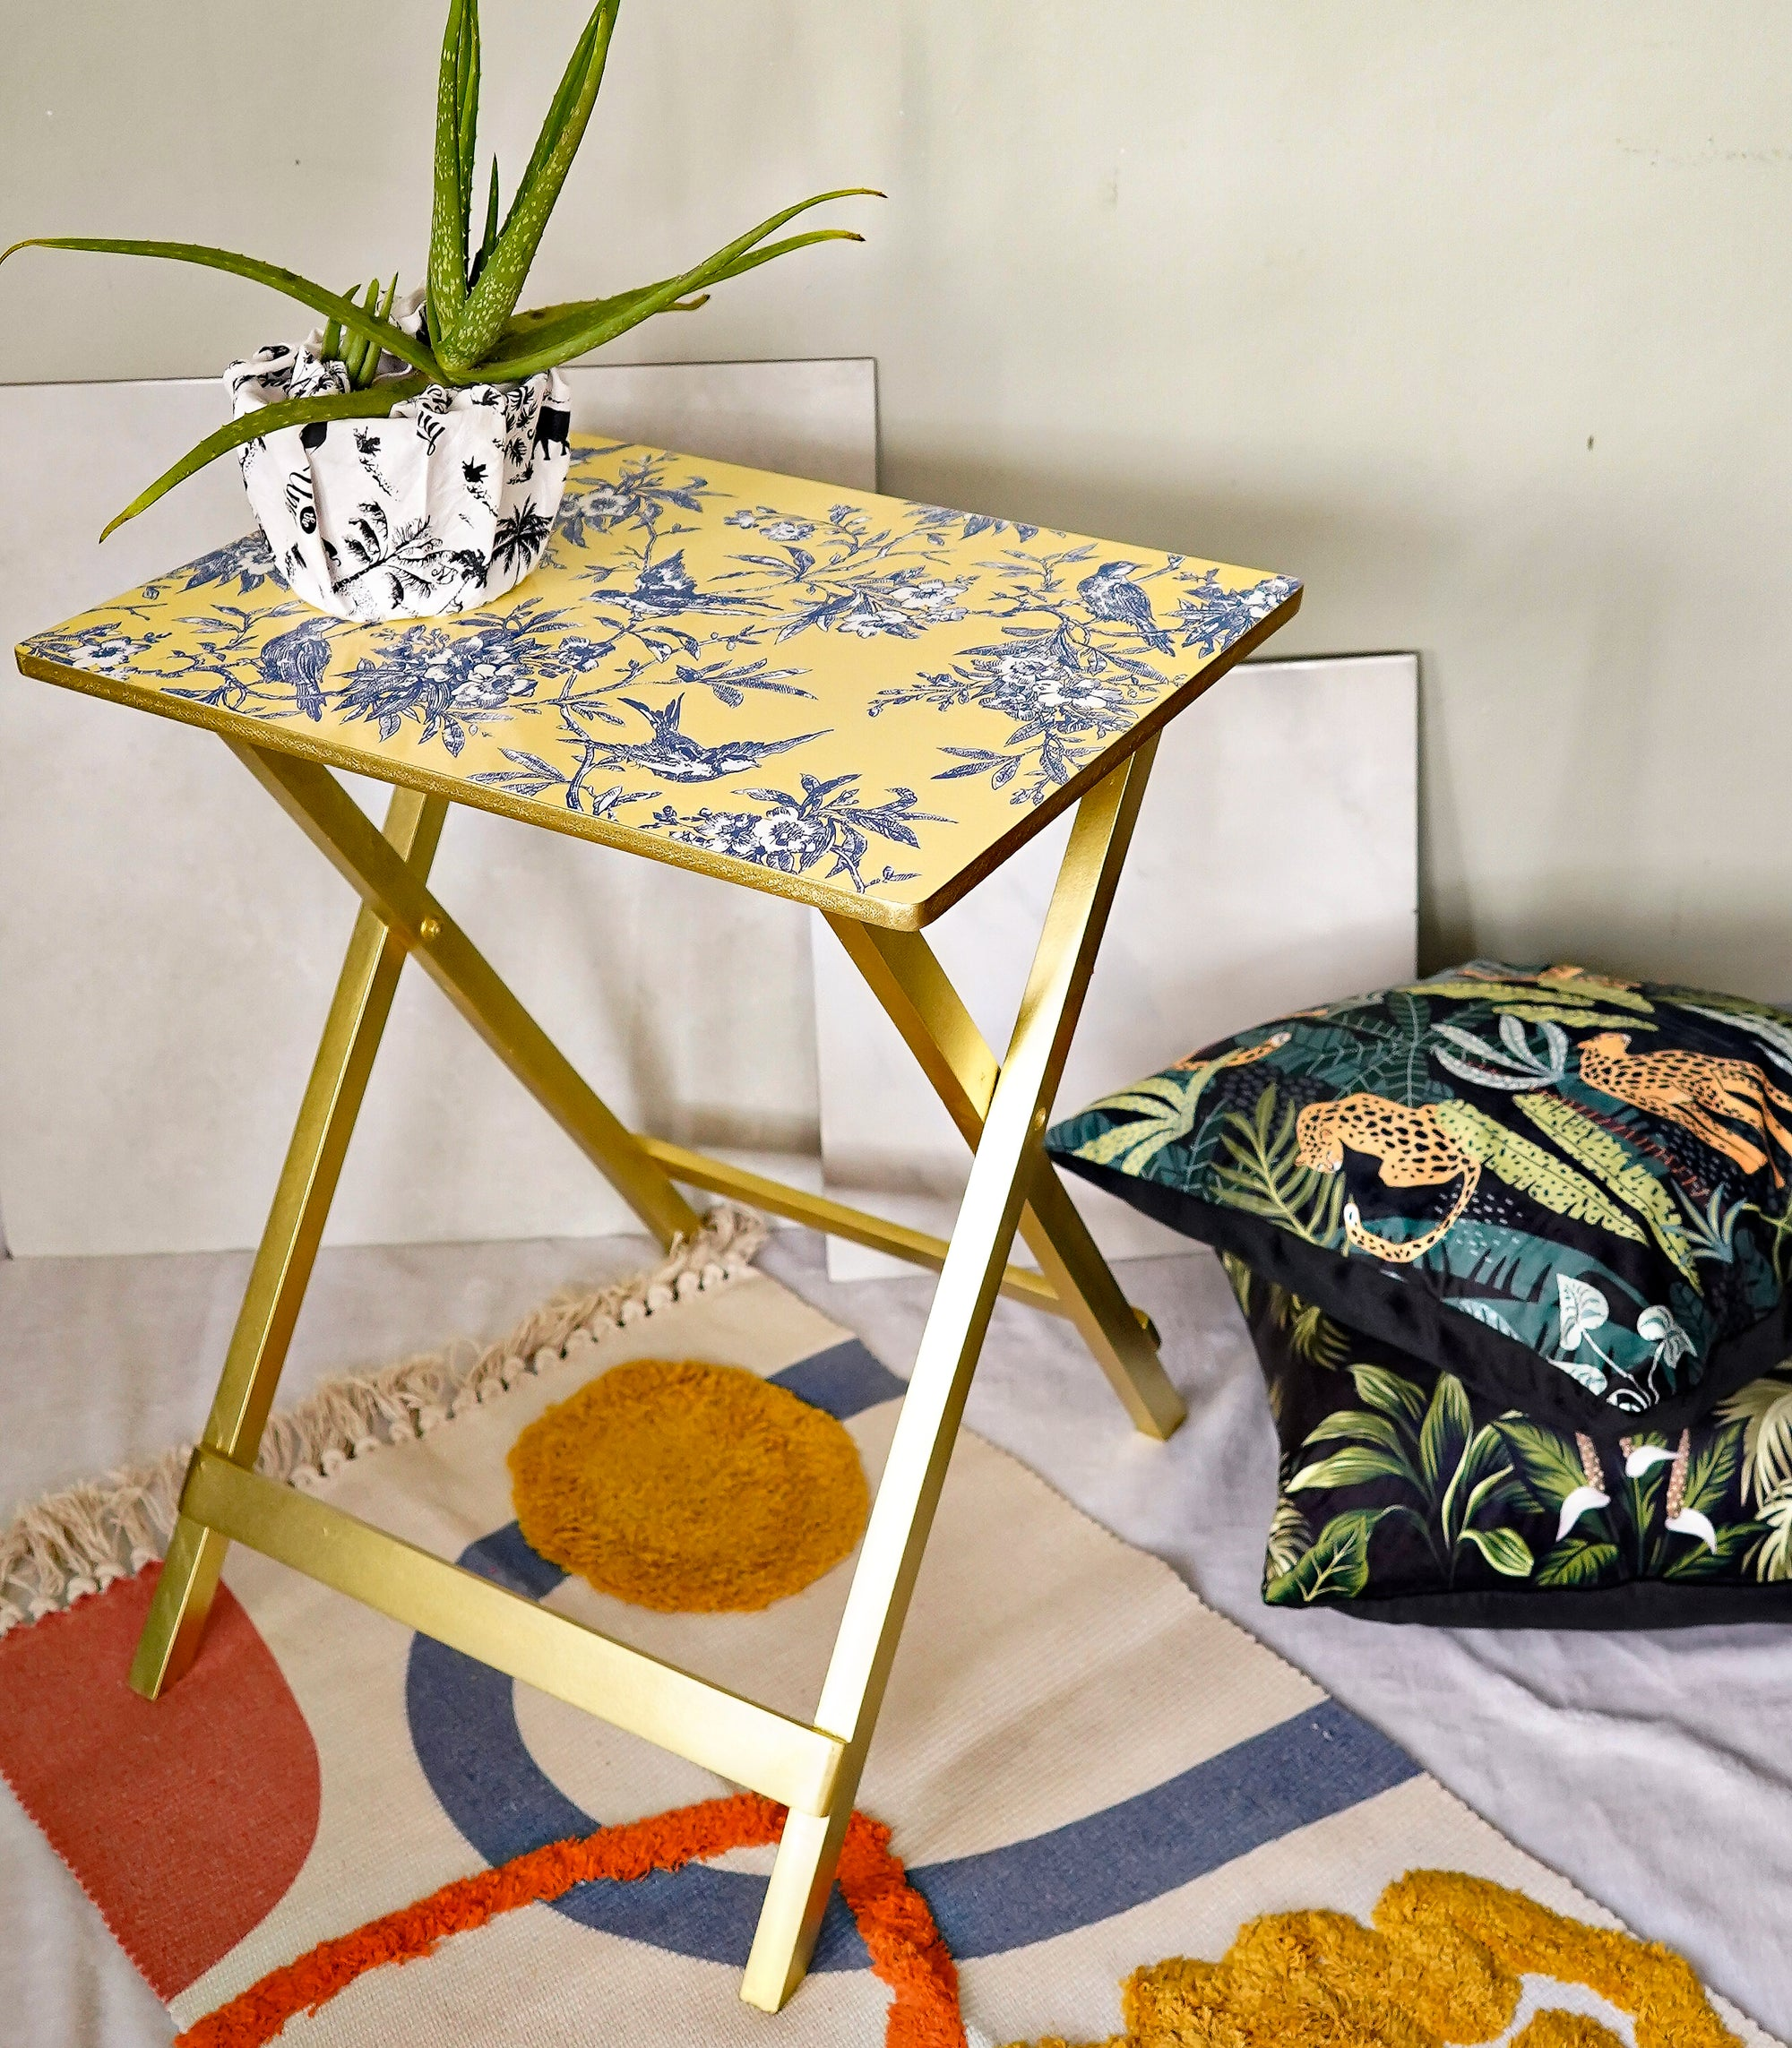 Foldable Tray Table - Blue Birds on Yellow